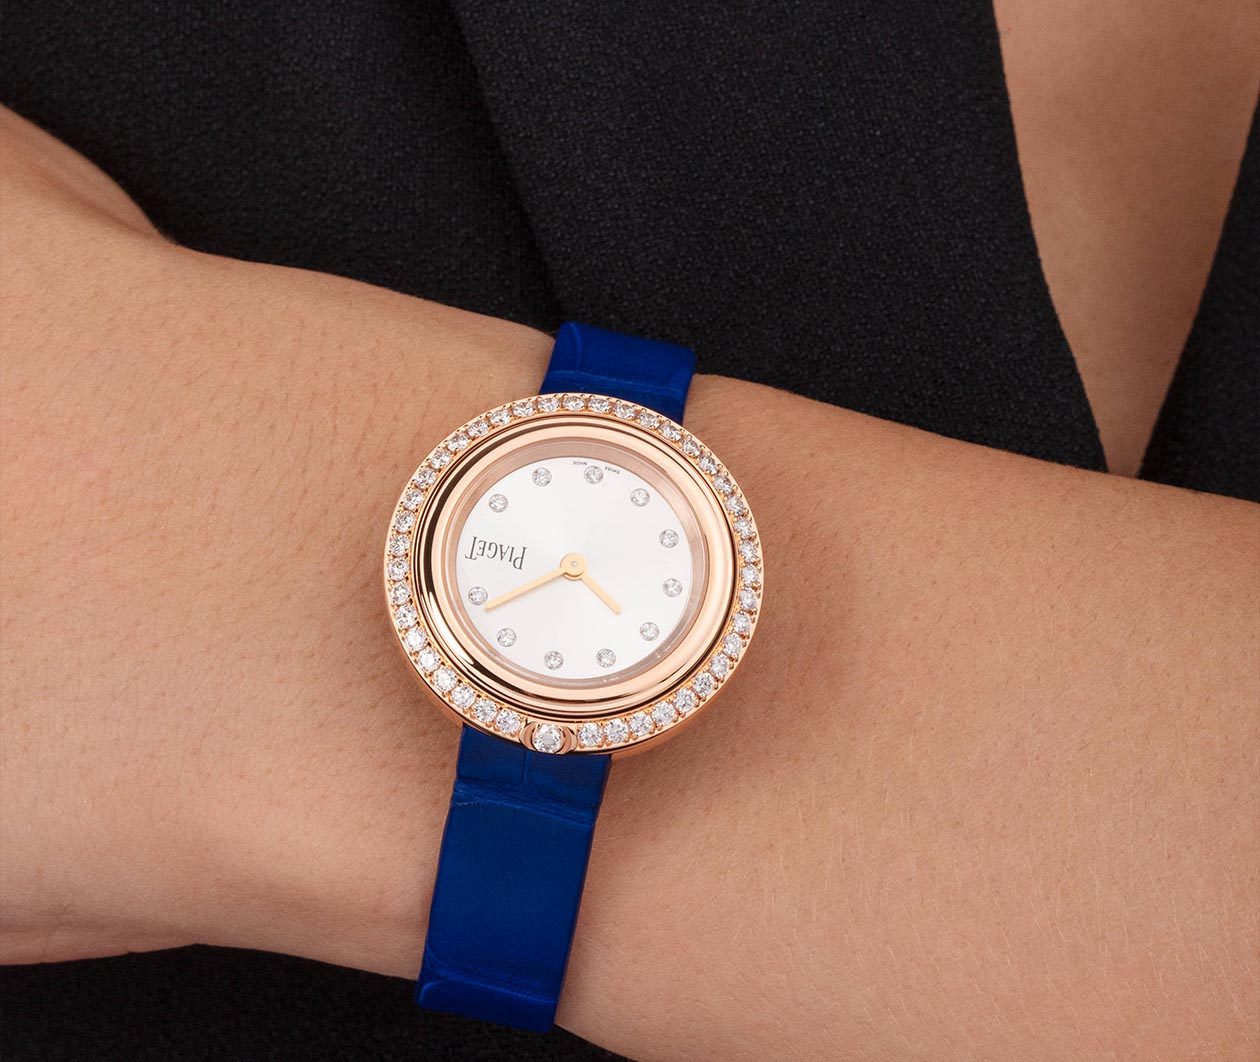 Piaget Possession watch G0A43082 Carousel 2 FINAL